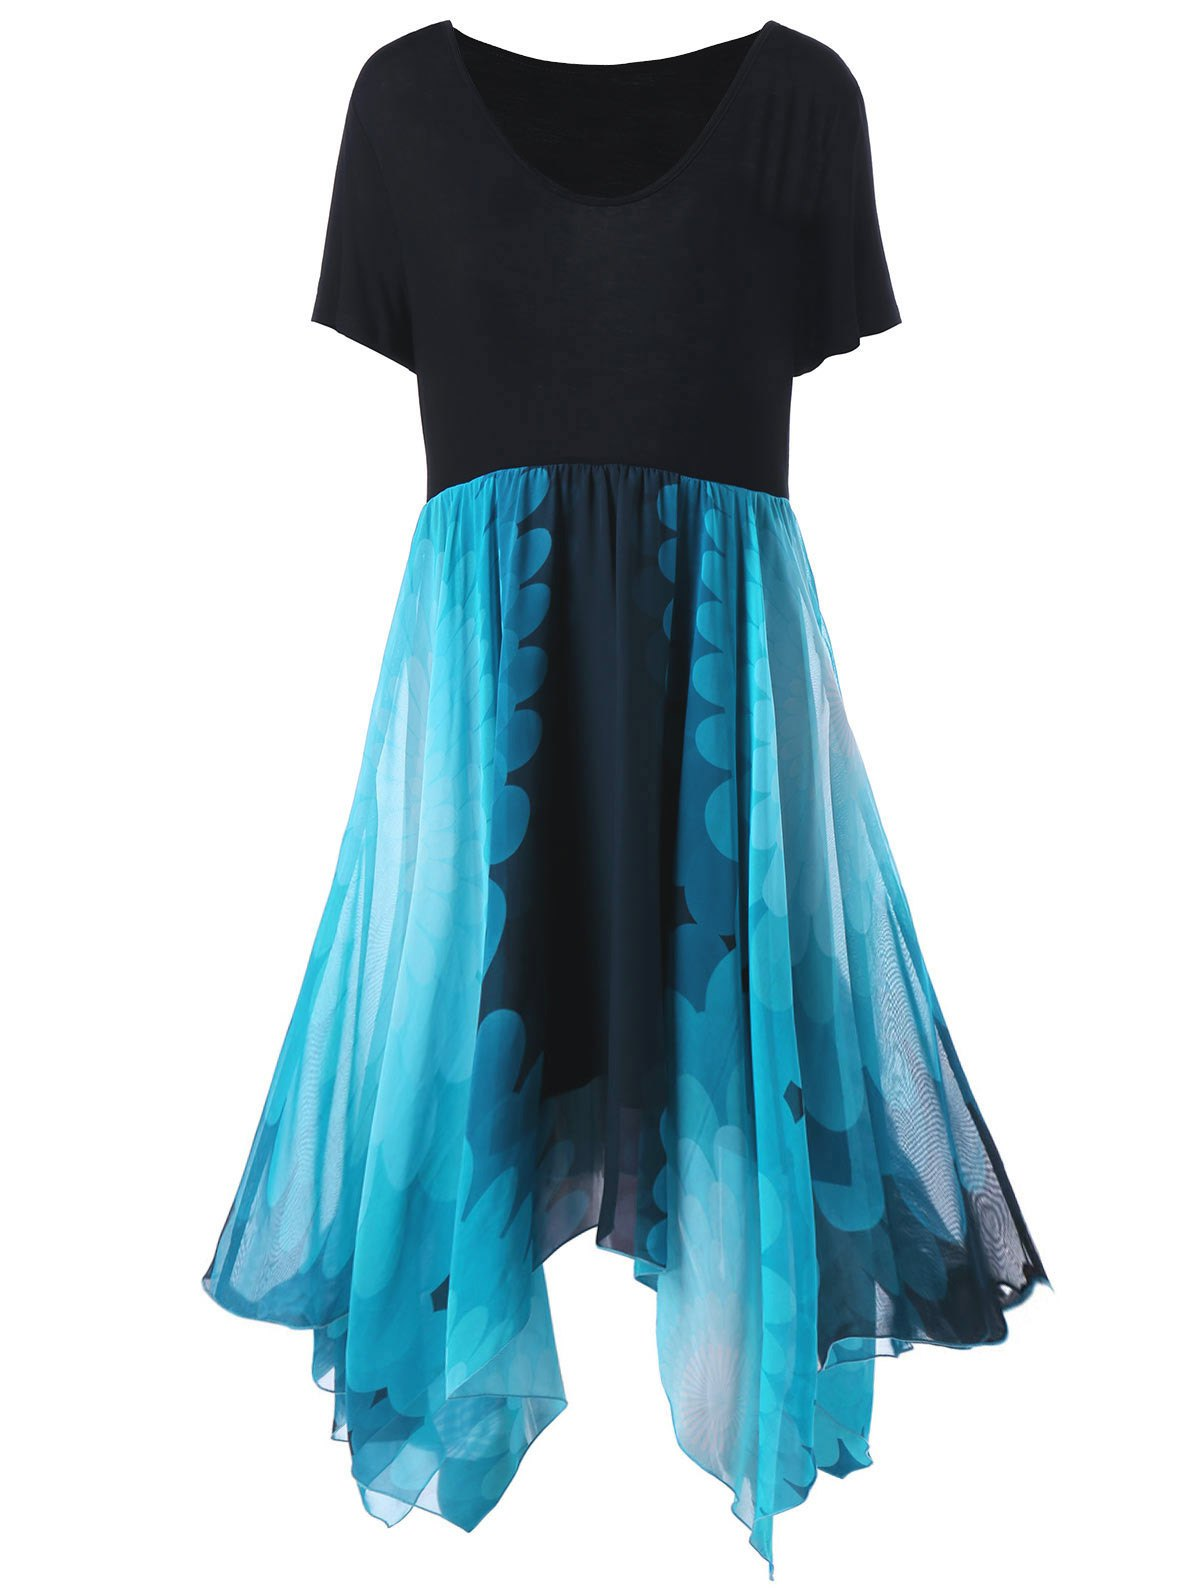 Plus Size High Waist Handkerchief Dress - BLUE/BLACK ONE SIZE